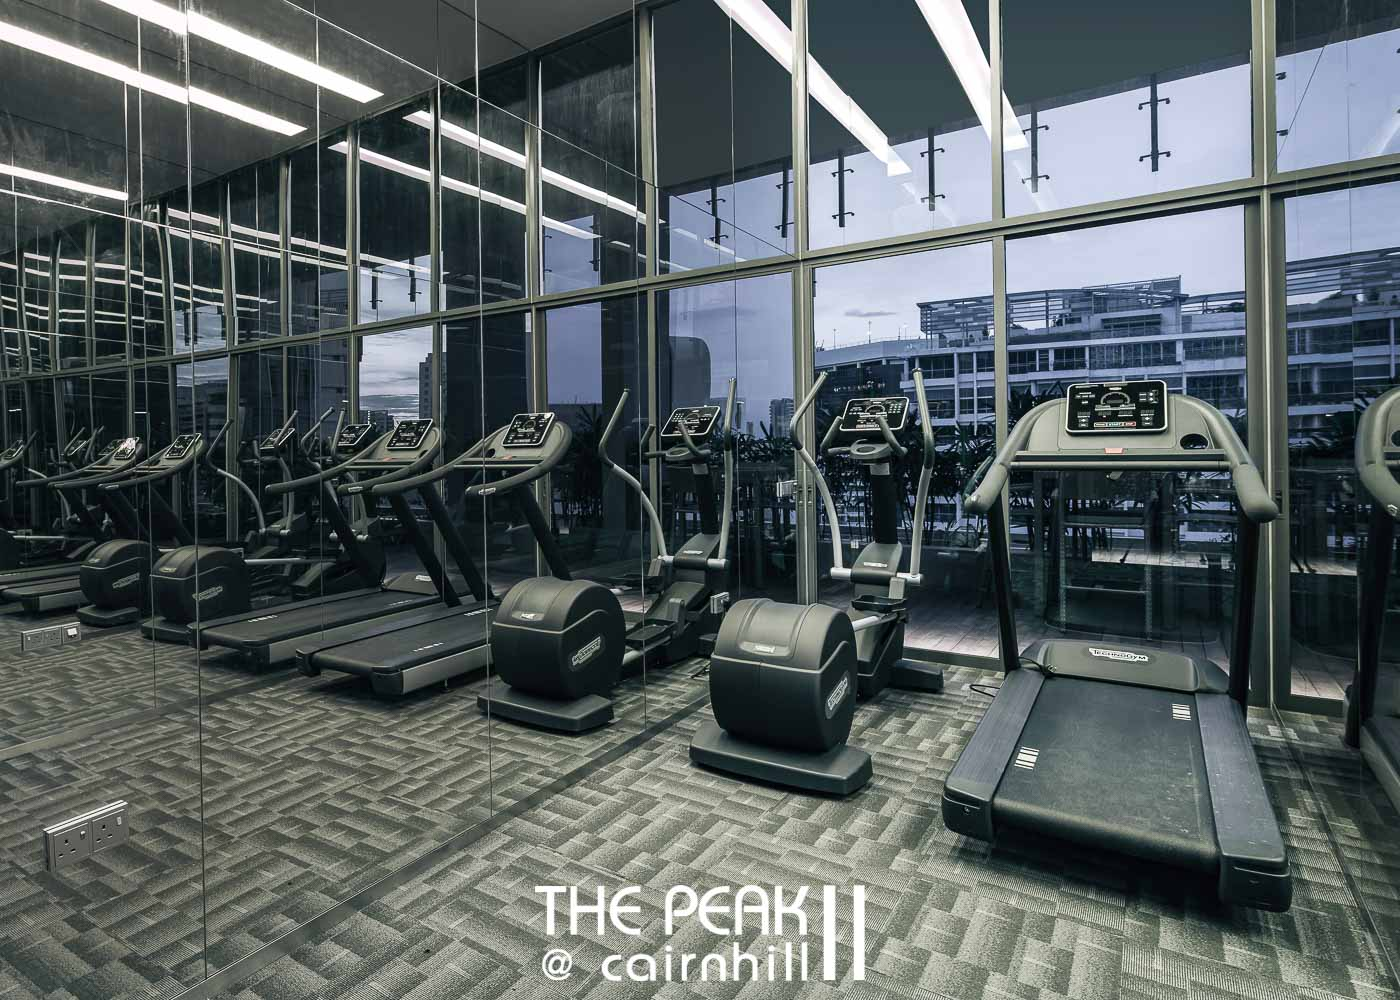 The Peak @ Cairnhill II gym